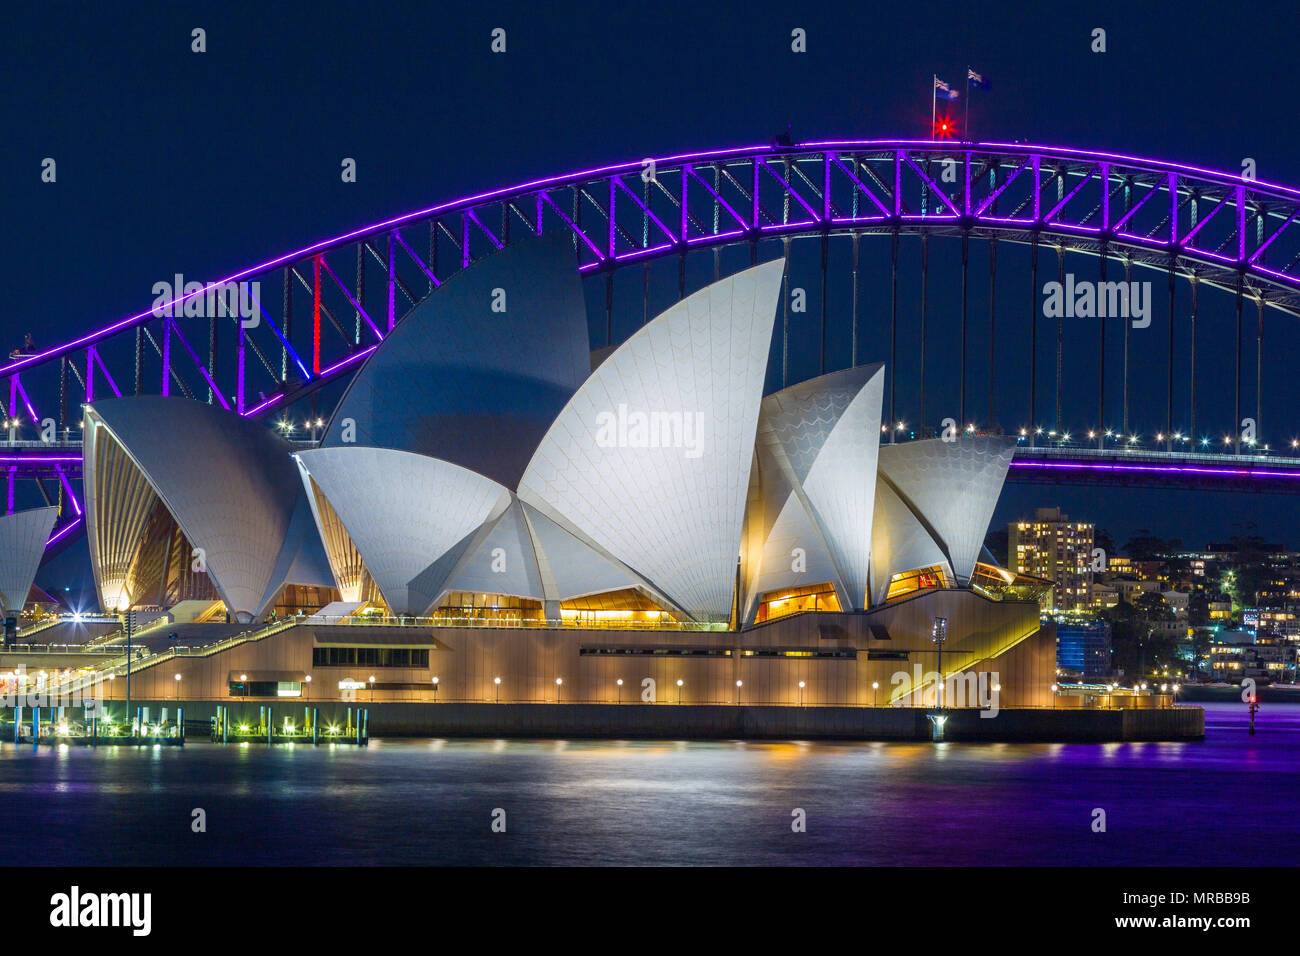 Sydney Harbour Bridge and Sydney Opera House during the 2018 'Vivid Sydney' festival, which sees special lighting effects displayed on notable landmar - Stock Image